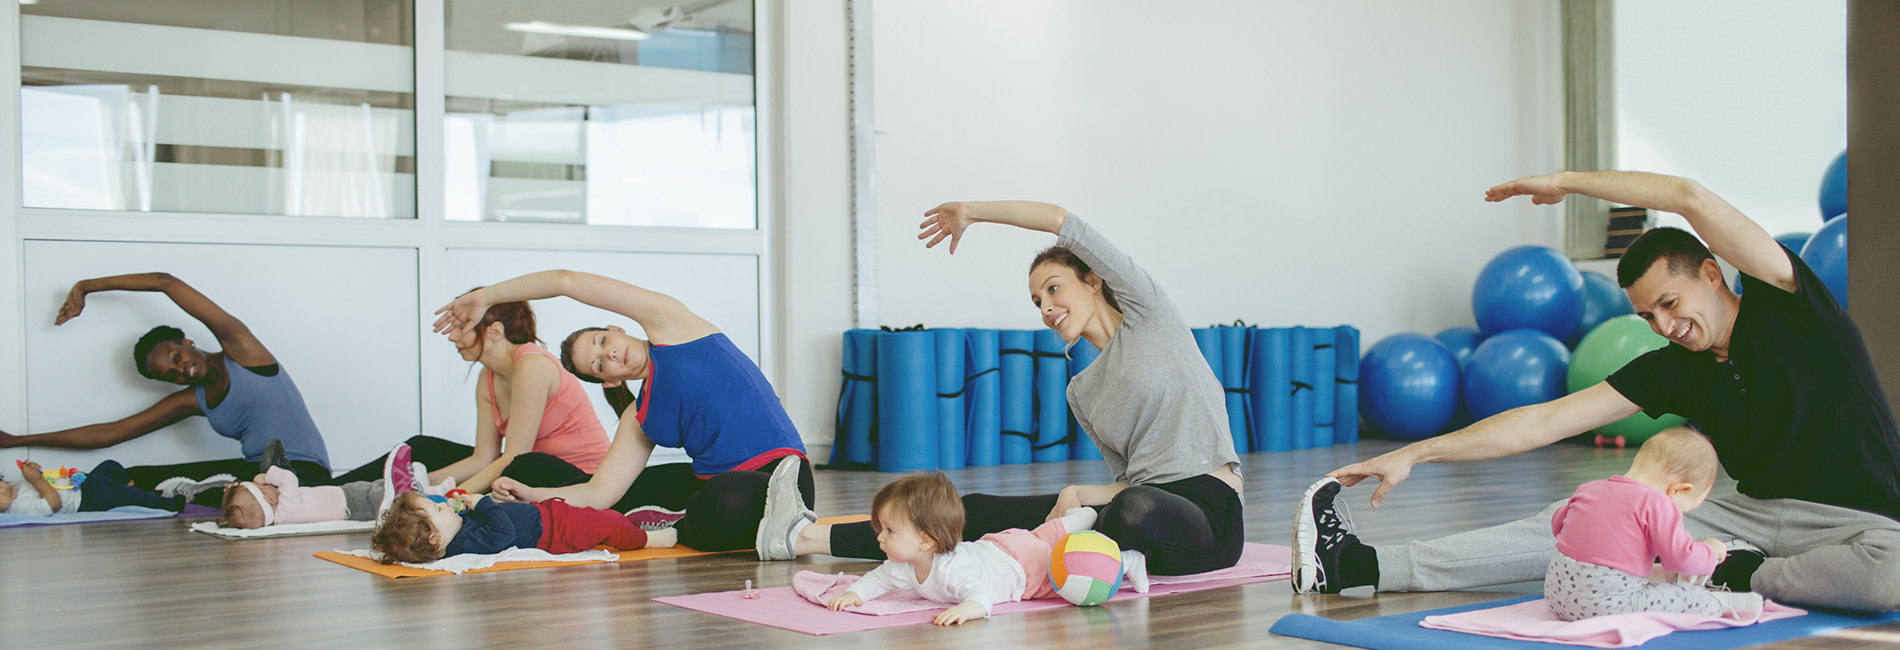 Parents doing yoga in a gymnasium with their babies.